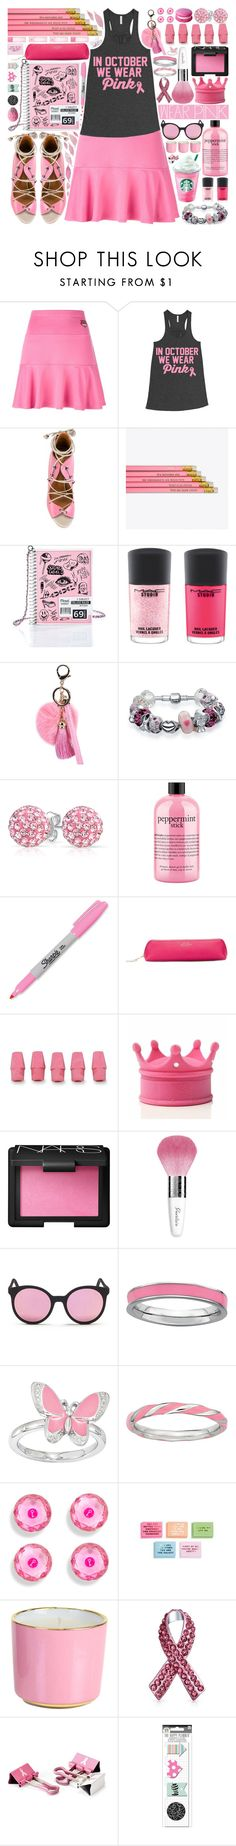 """""""We Wear Pink (Mean Girls)"""" by beautifully-eclectic ❤ liked on Polyvore featuring Kenzo, Malone Souliers, Current Mood, M.A.C, Mikey, Bling Jewelry, philosophy, Sharpie, Smythson and NARS Cosmetics"""